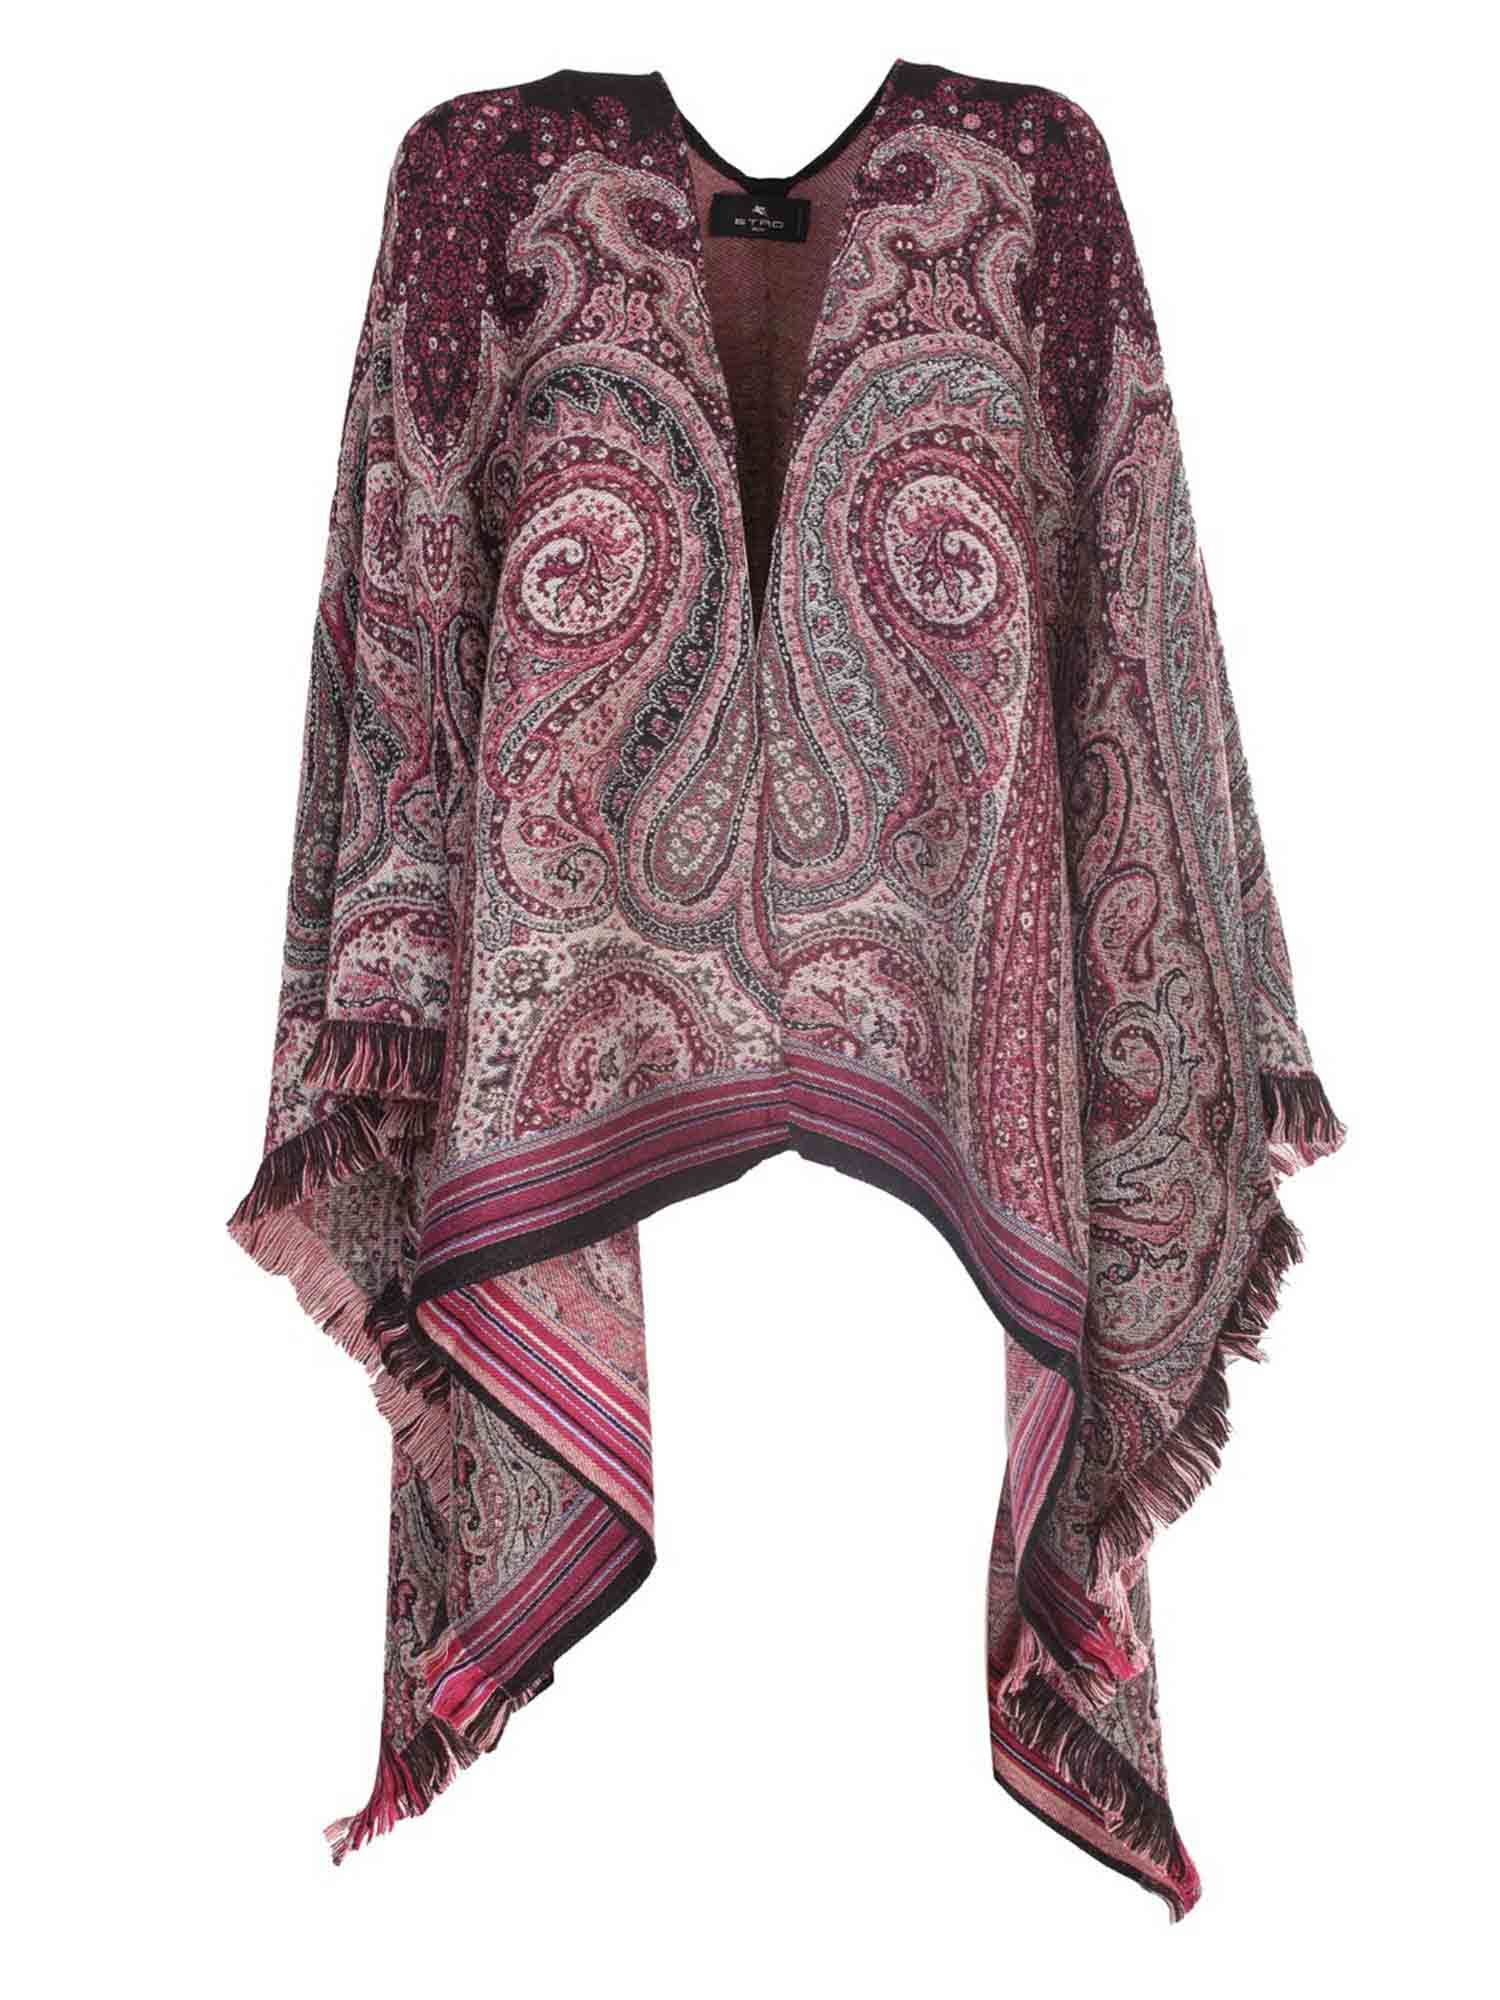 Etro JACQUARD CAPE IN PATTERNED WOOL IN RED